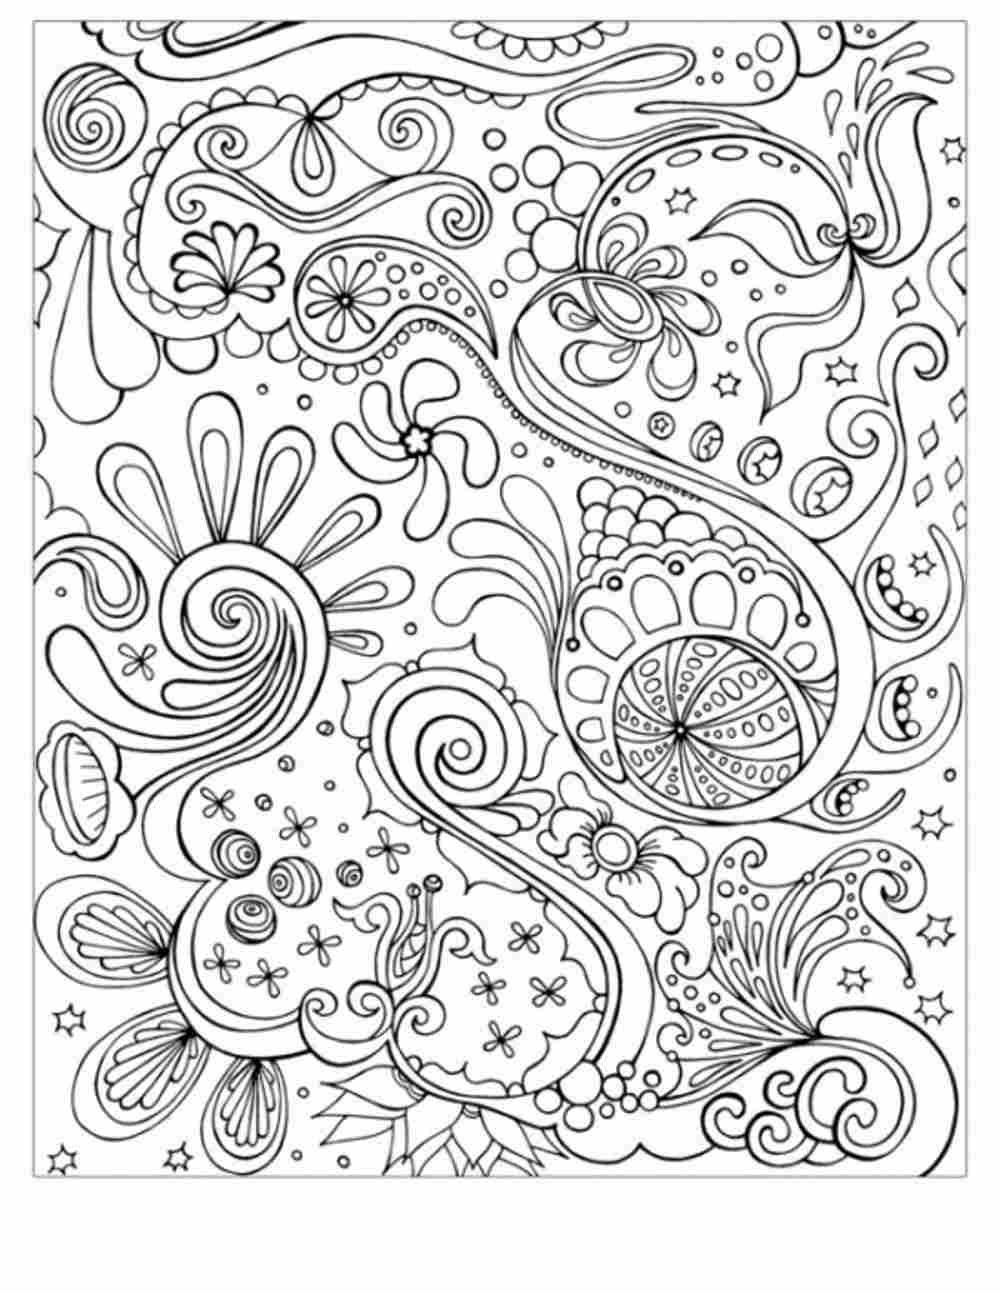 Best ideas about Free Printable Coloring Pages For Adults Only Pdf . Save or Pin 44 Awesome Free Printable Coloring Pages for Adults Now.